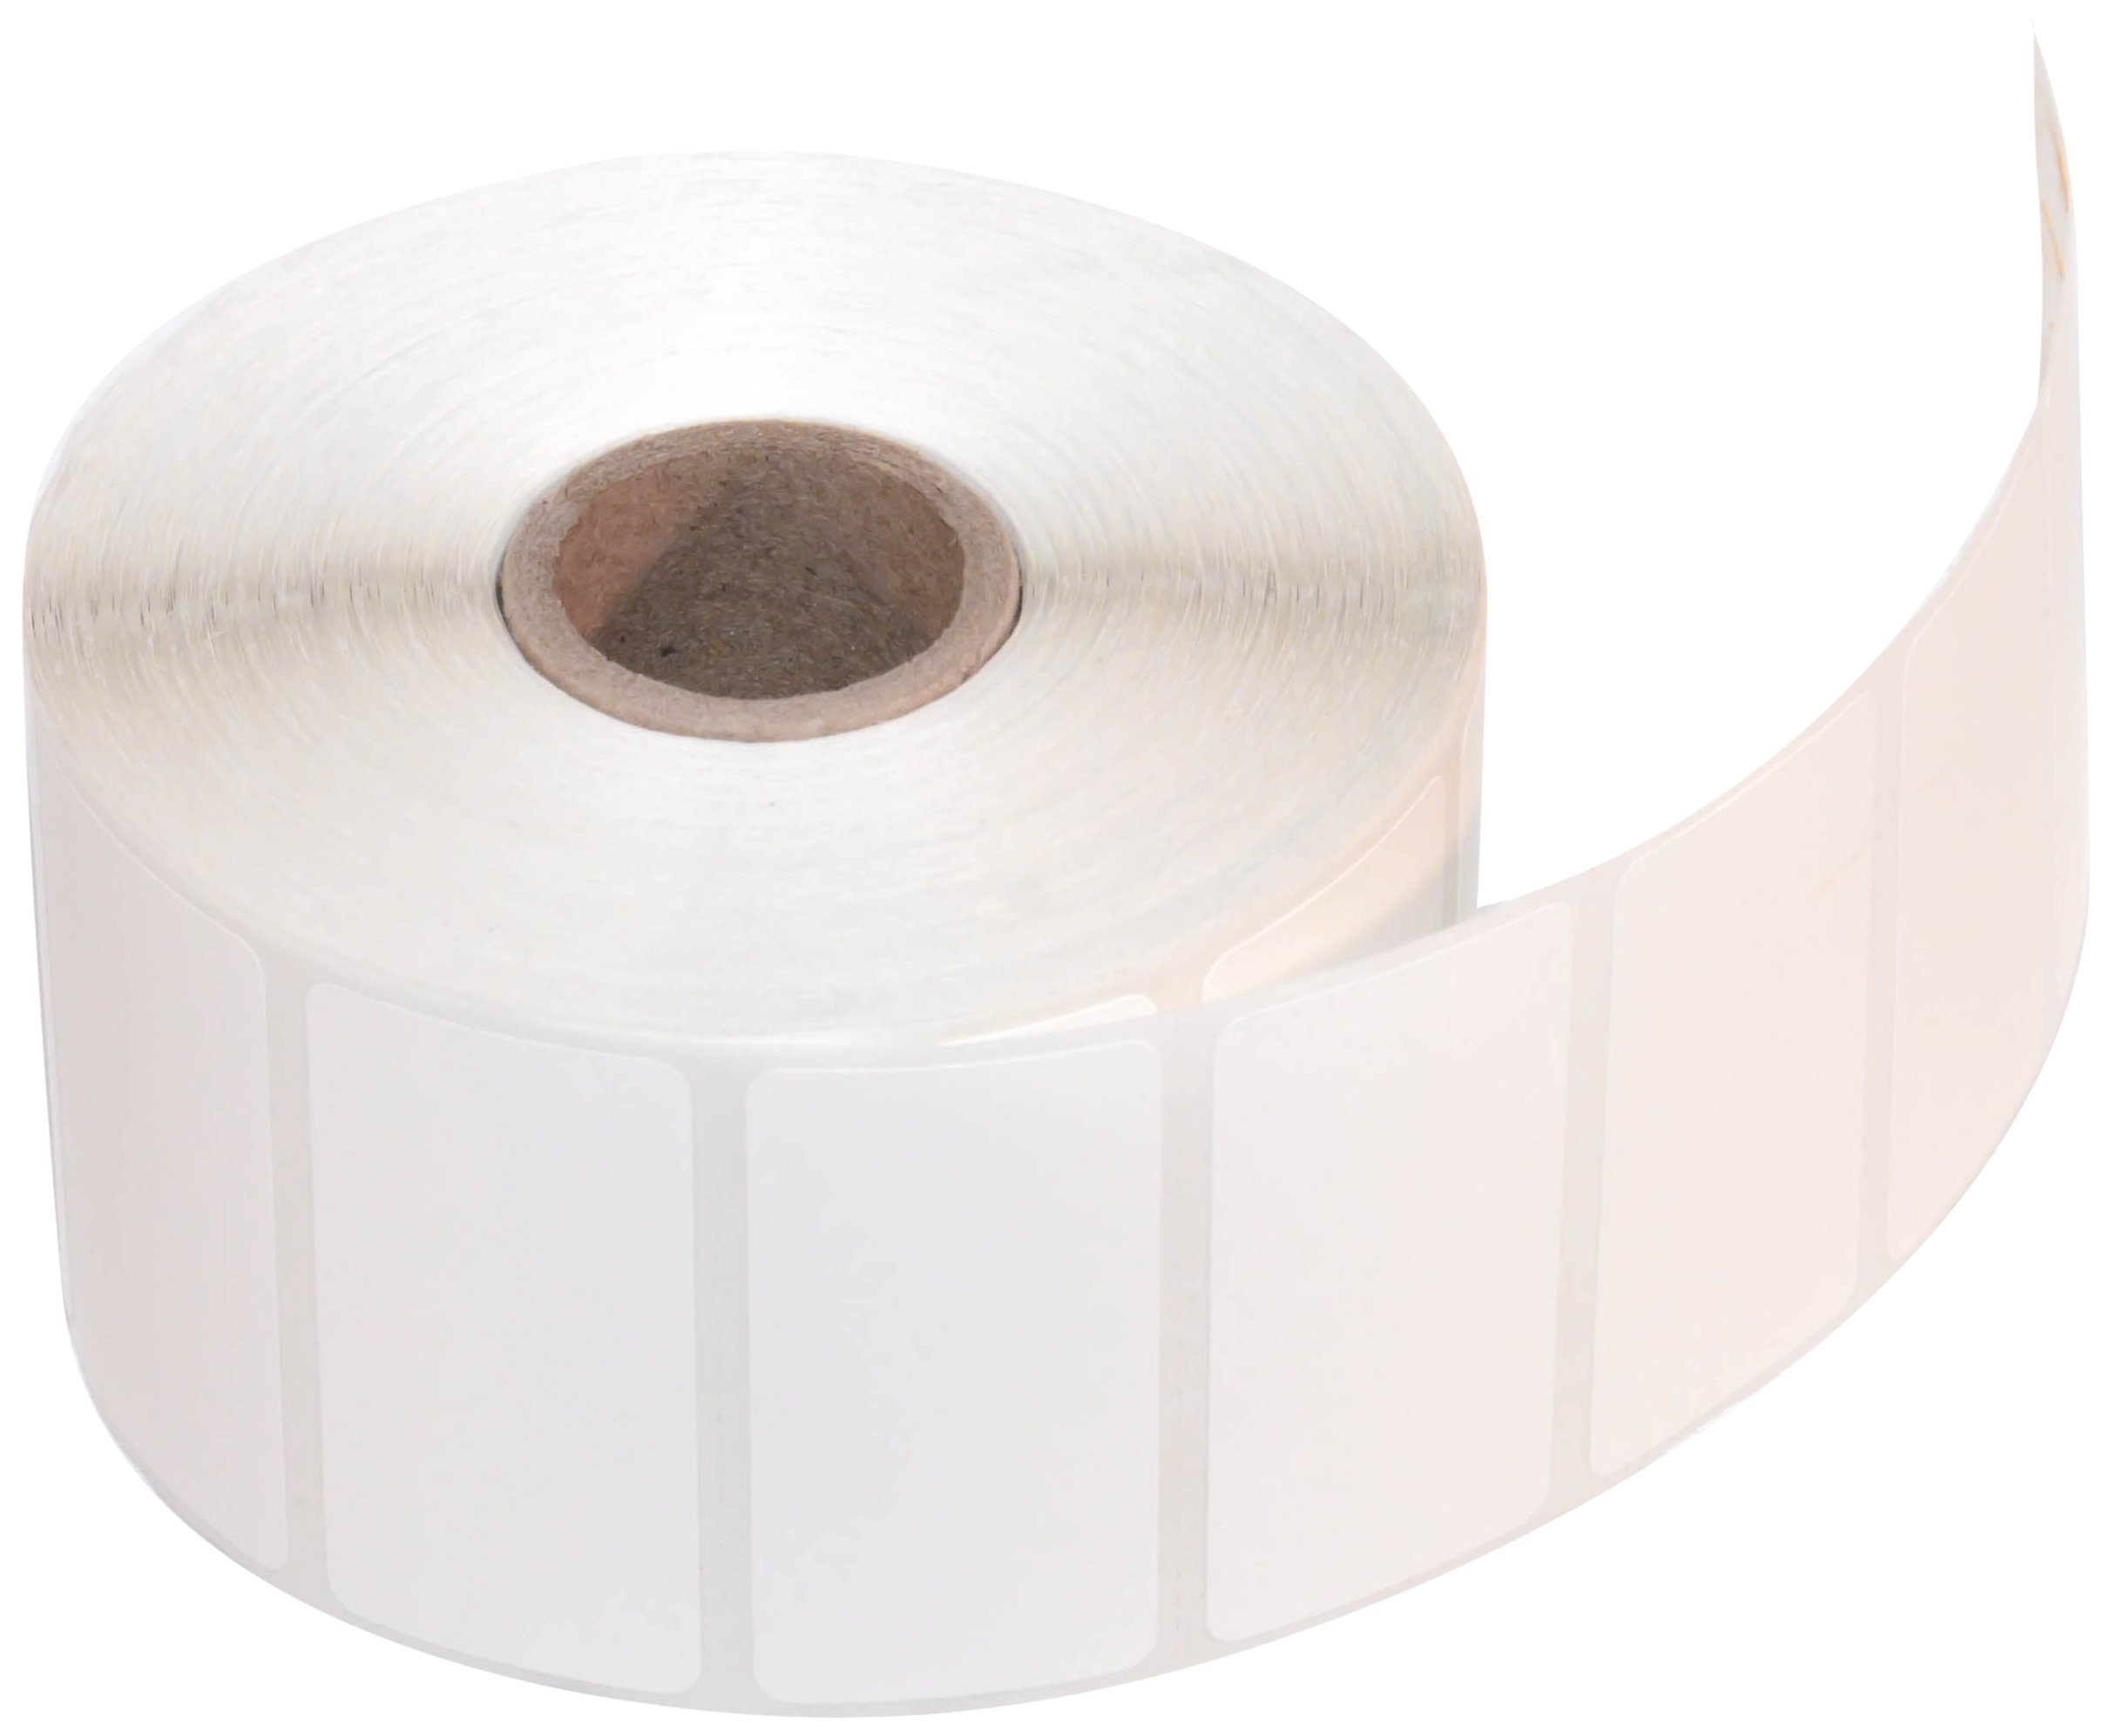 CompuLabel Direct Thermal Labels, 2-Inch x 1 Inch, White, Roll, Permanent Adhesive, Perforations Between Labels, 1300 per Roll, 12 Rolls per Carton (530550) by Compulabel